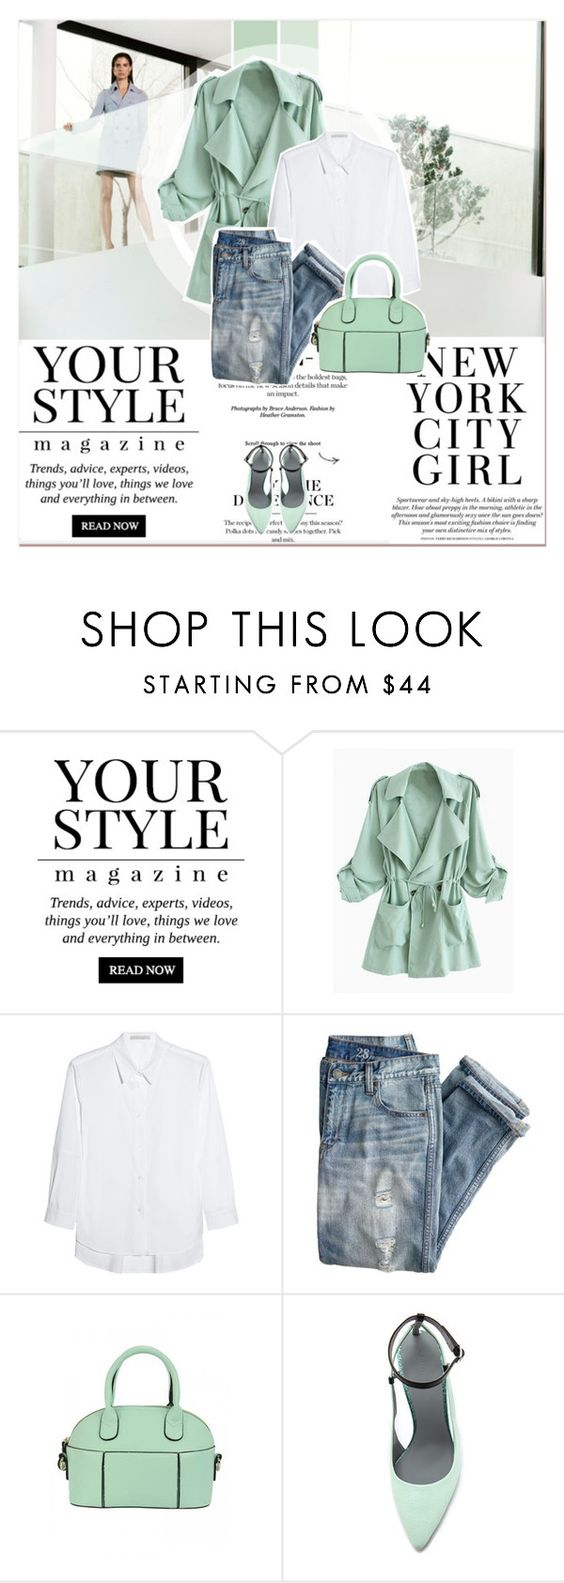 """Menthol Look"" by lucky-1990 ❤ liked on Polyvore featuring Pussycat, dVb Victoria Beckham, J.Crew and Alexander Wang"